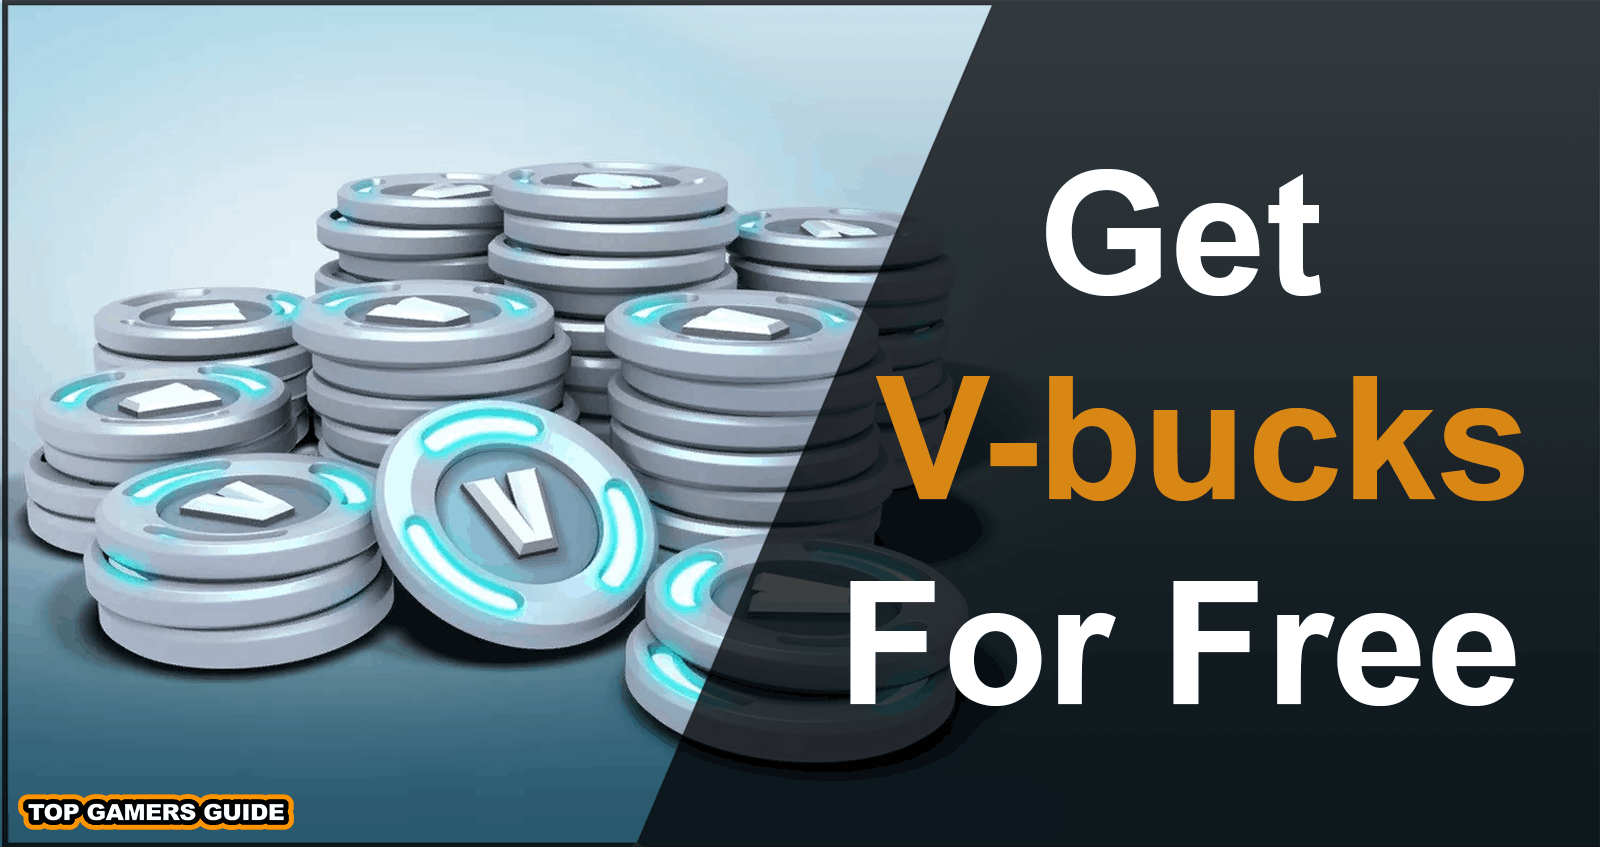 Freevbucks Co how to get free v bucks - 4 surprising ways that actually work!